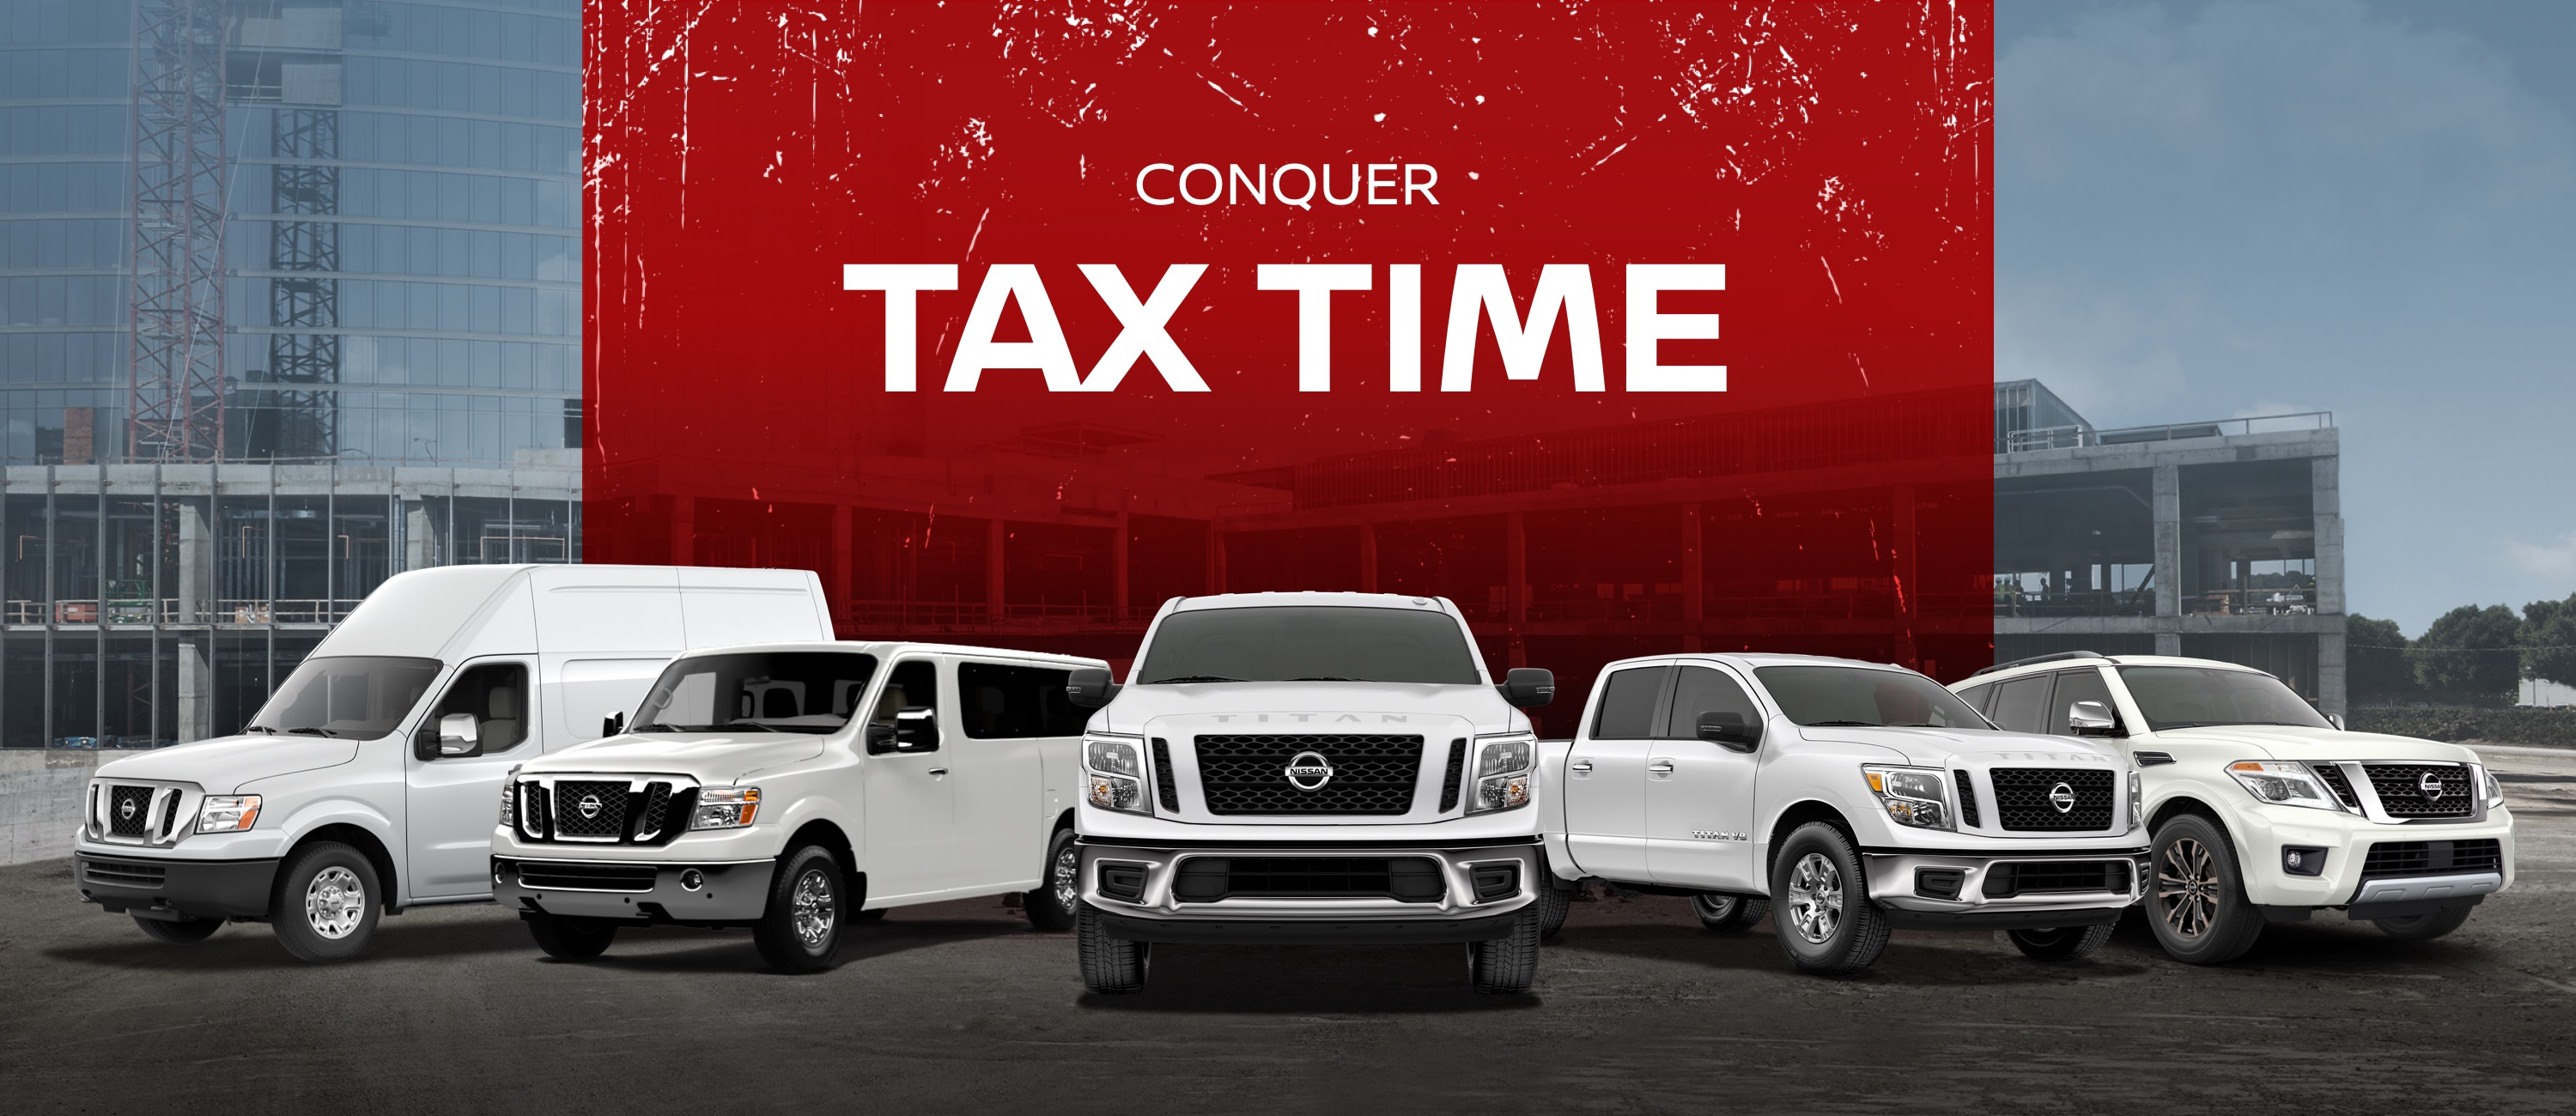 Conquer Tax Time